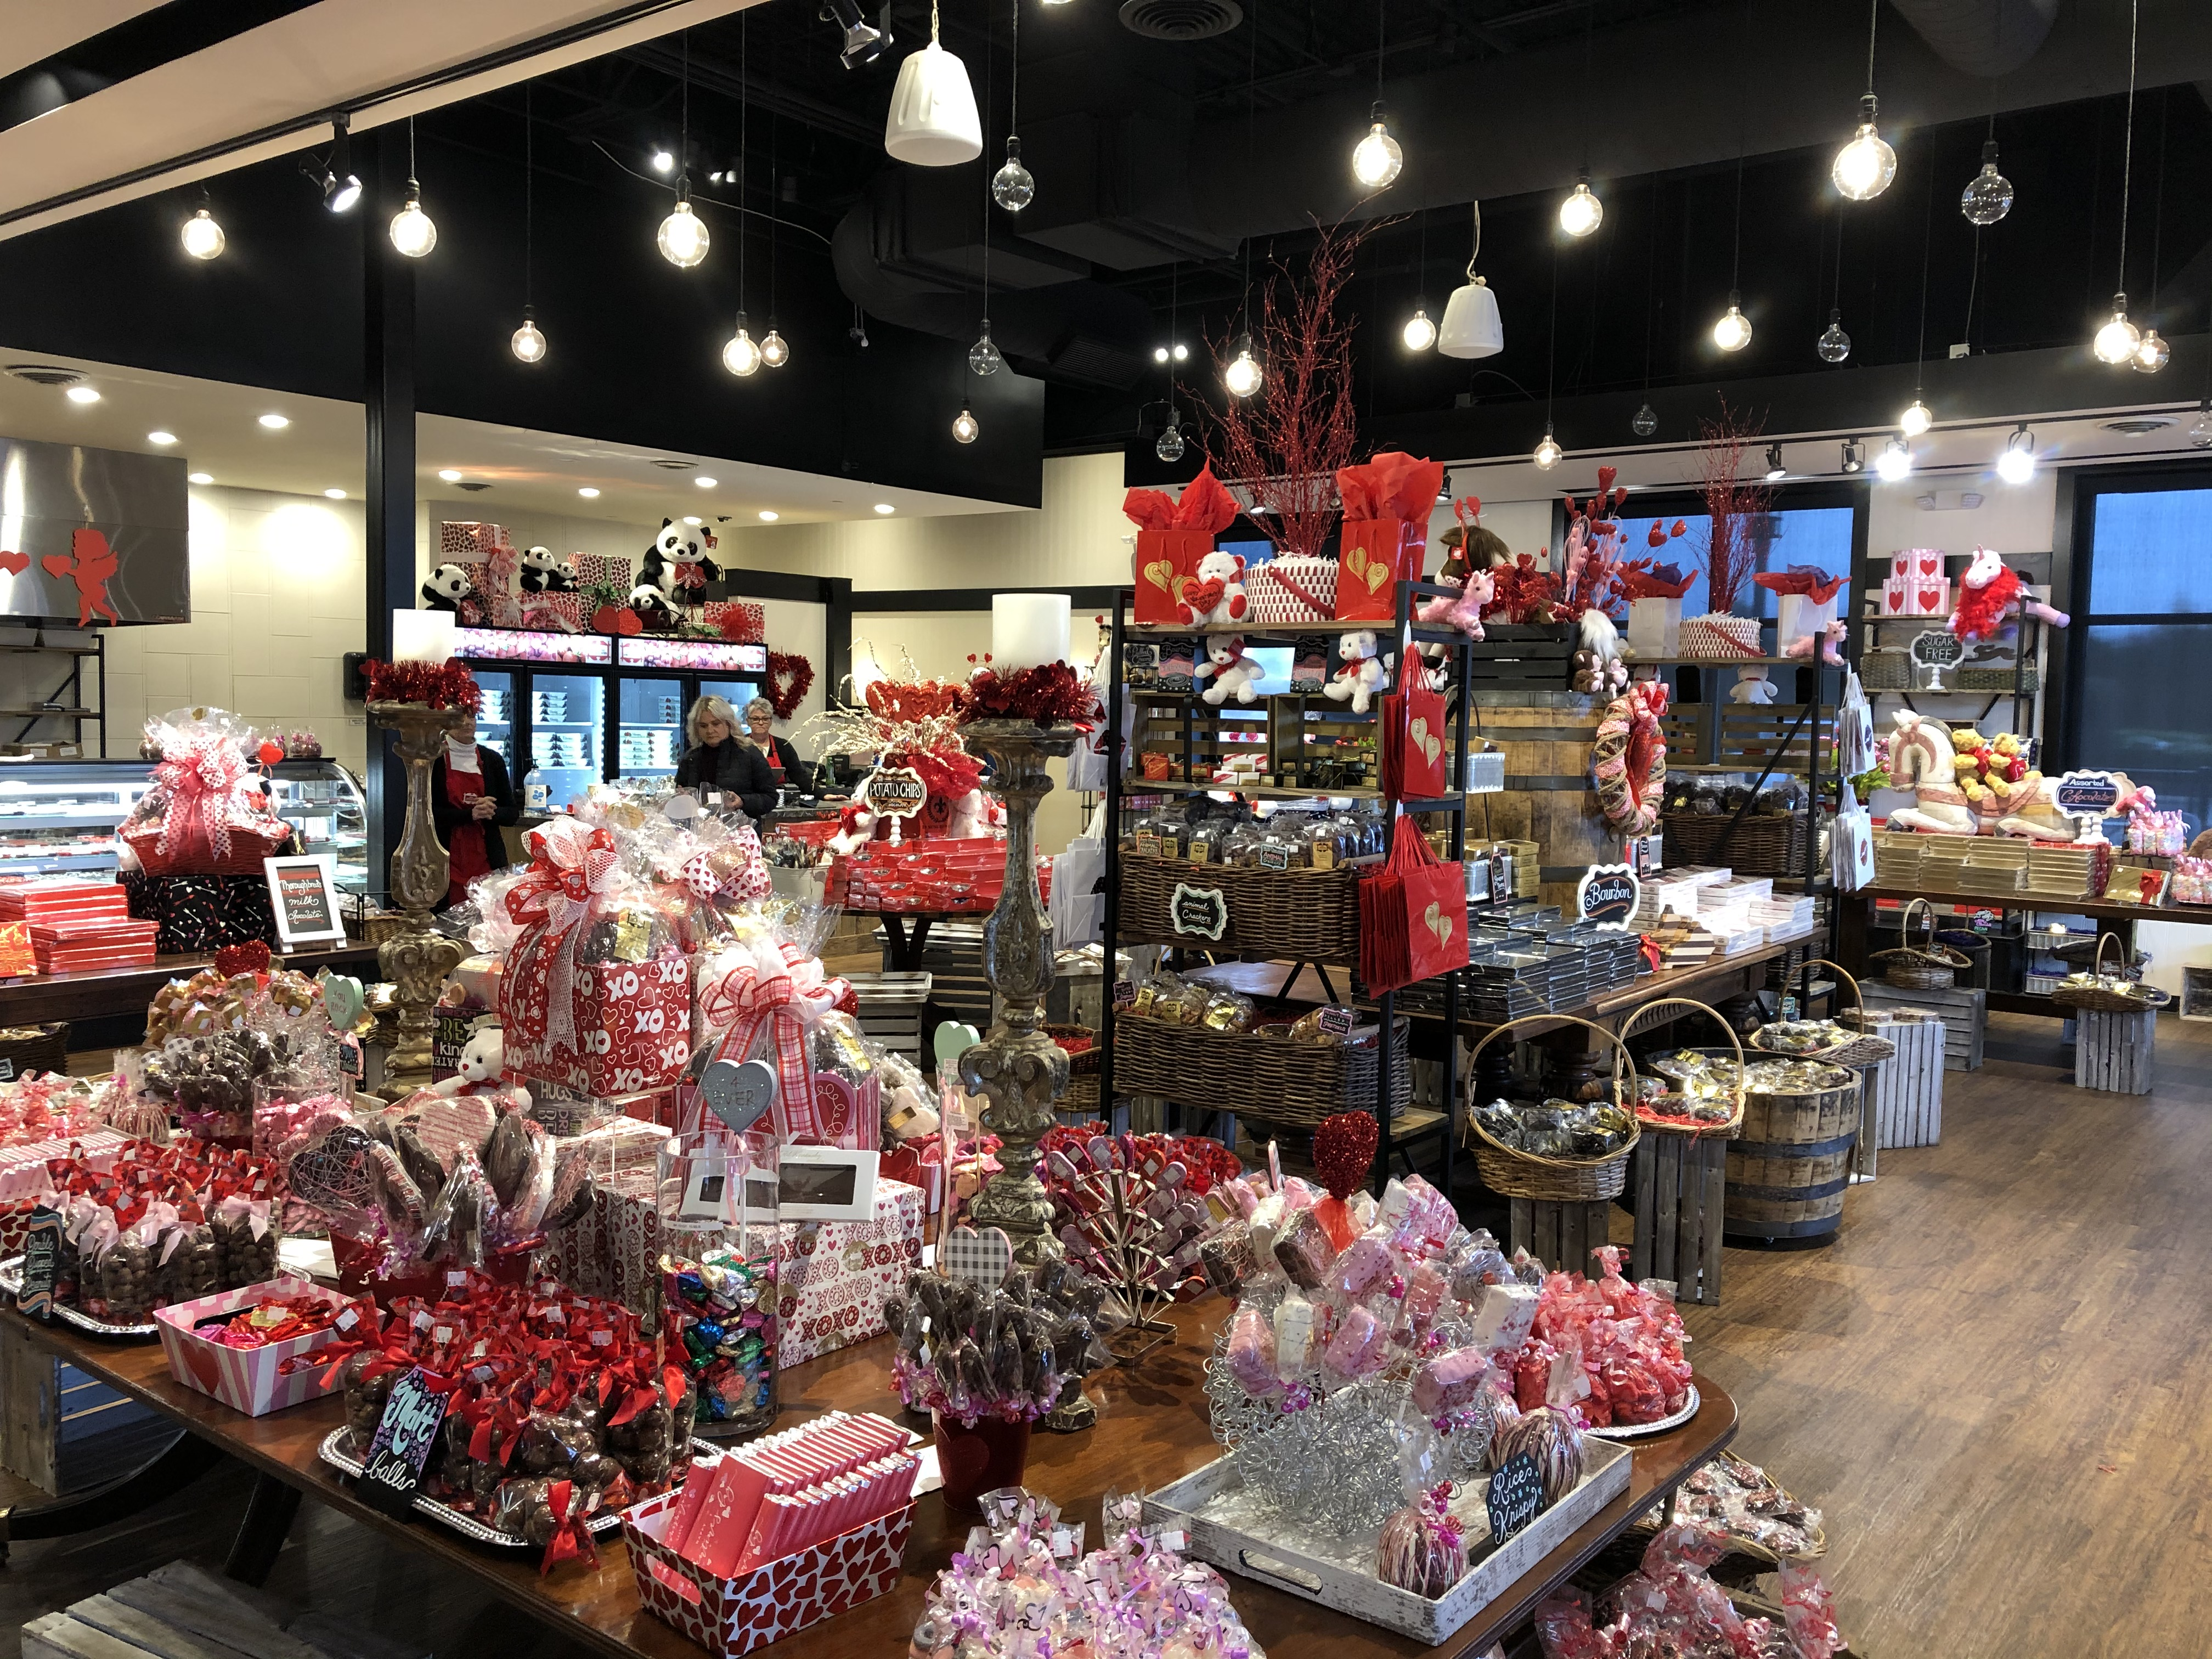 Inside at Old Kentucky Chocolates at the Hamburg Location